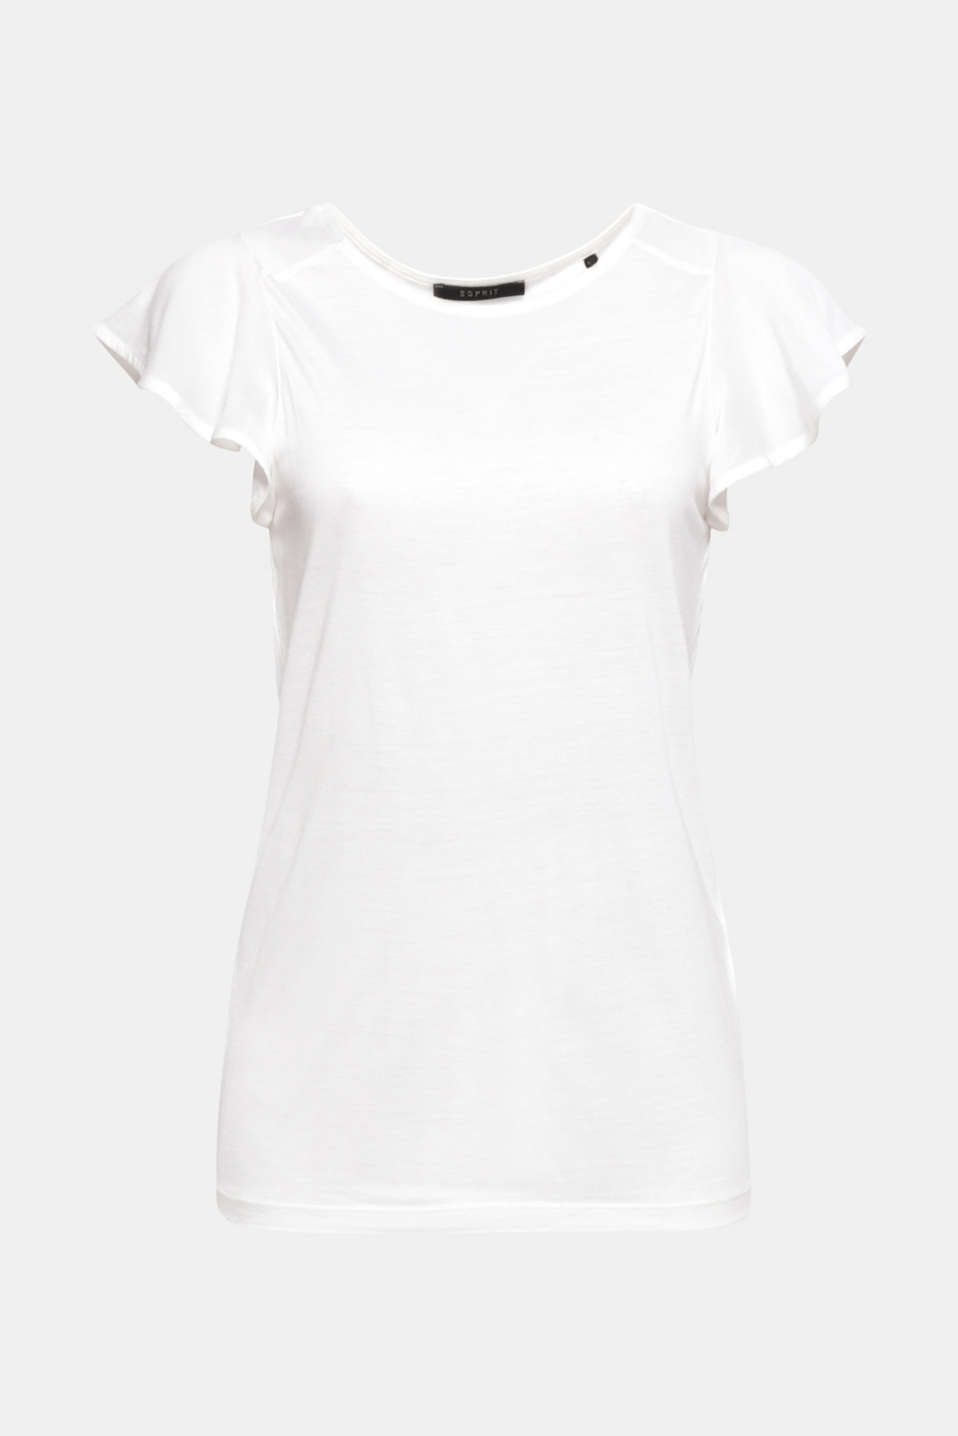 The pretty, fabric flounce sleeves effectively emphasise the extraordinary lightness of this T-shirt!